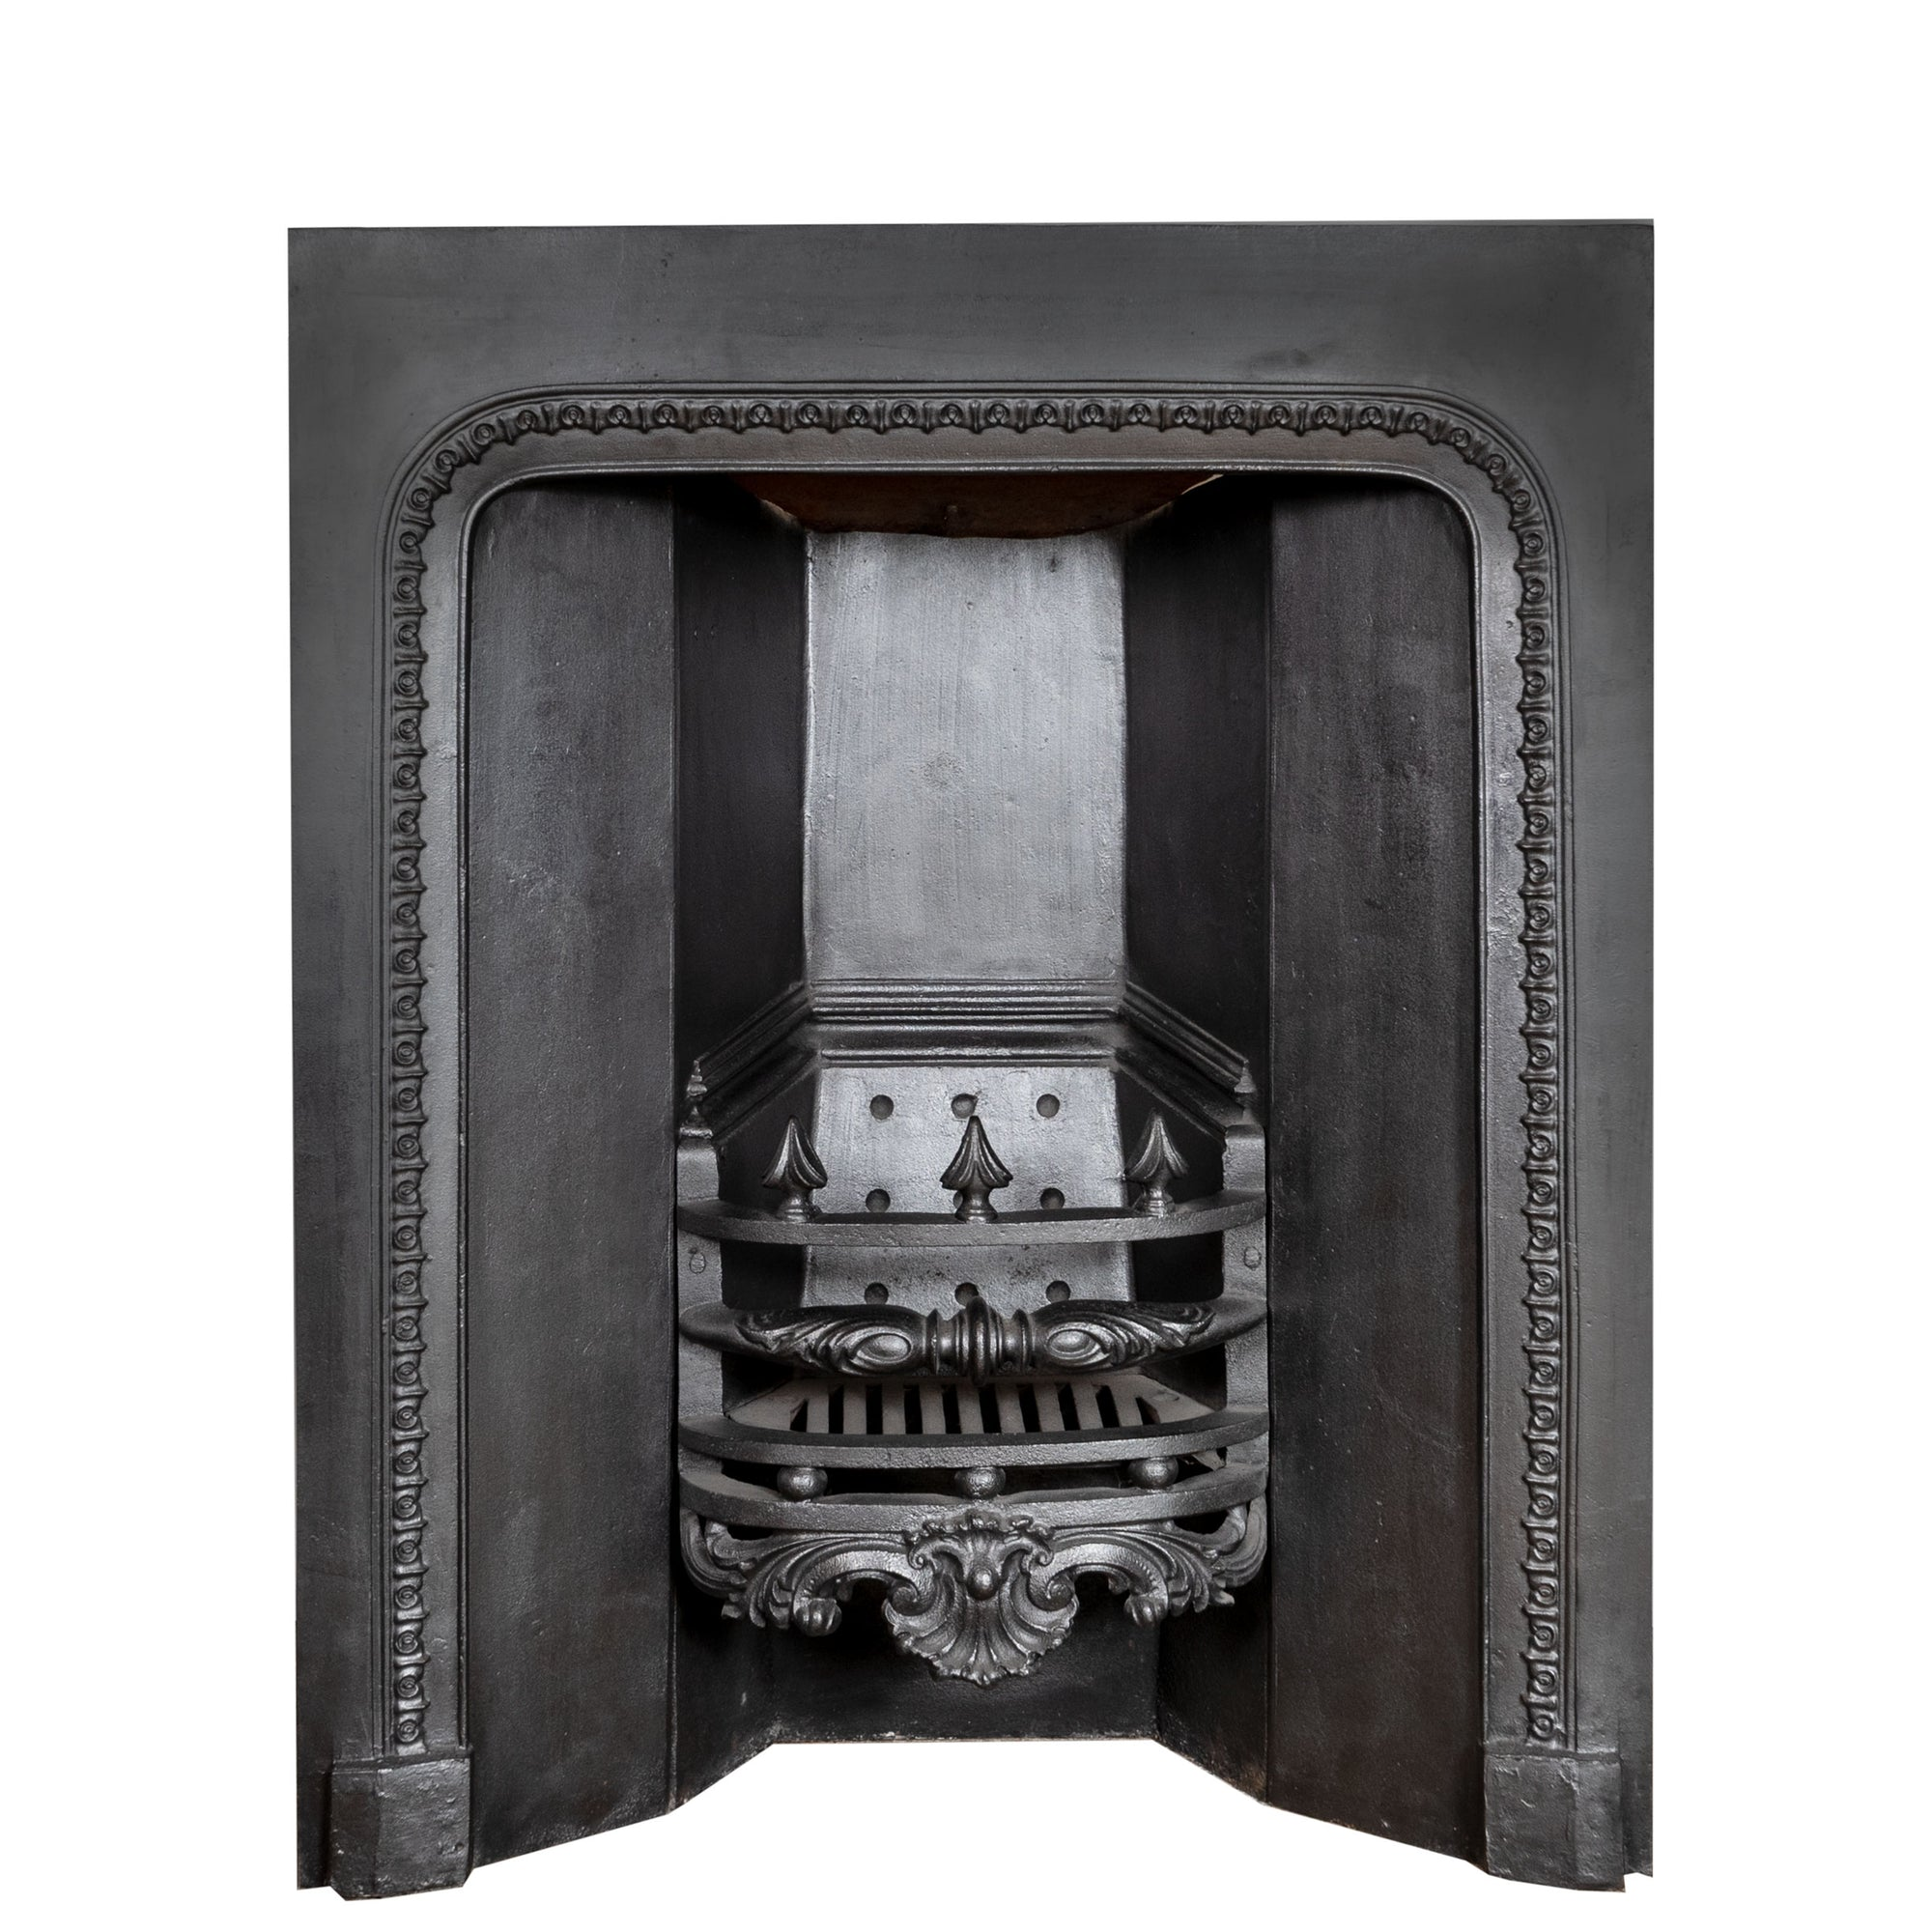 Antique Georgian Cast Iron Fireplace Insert - architectural-forum